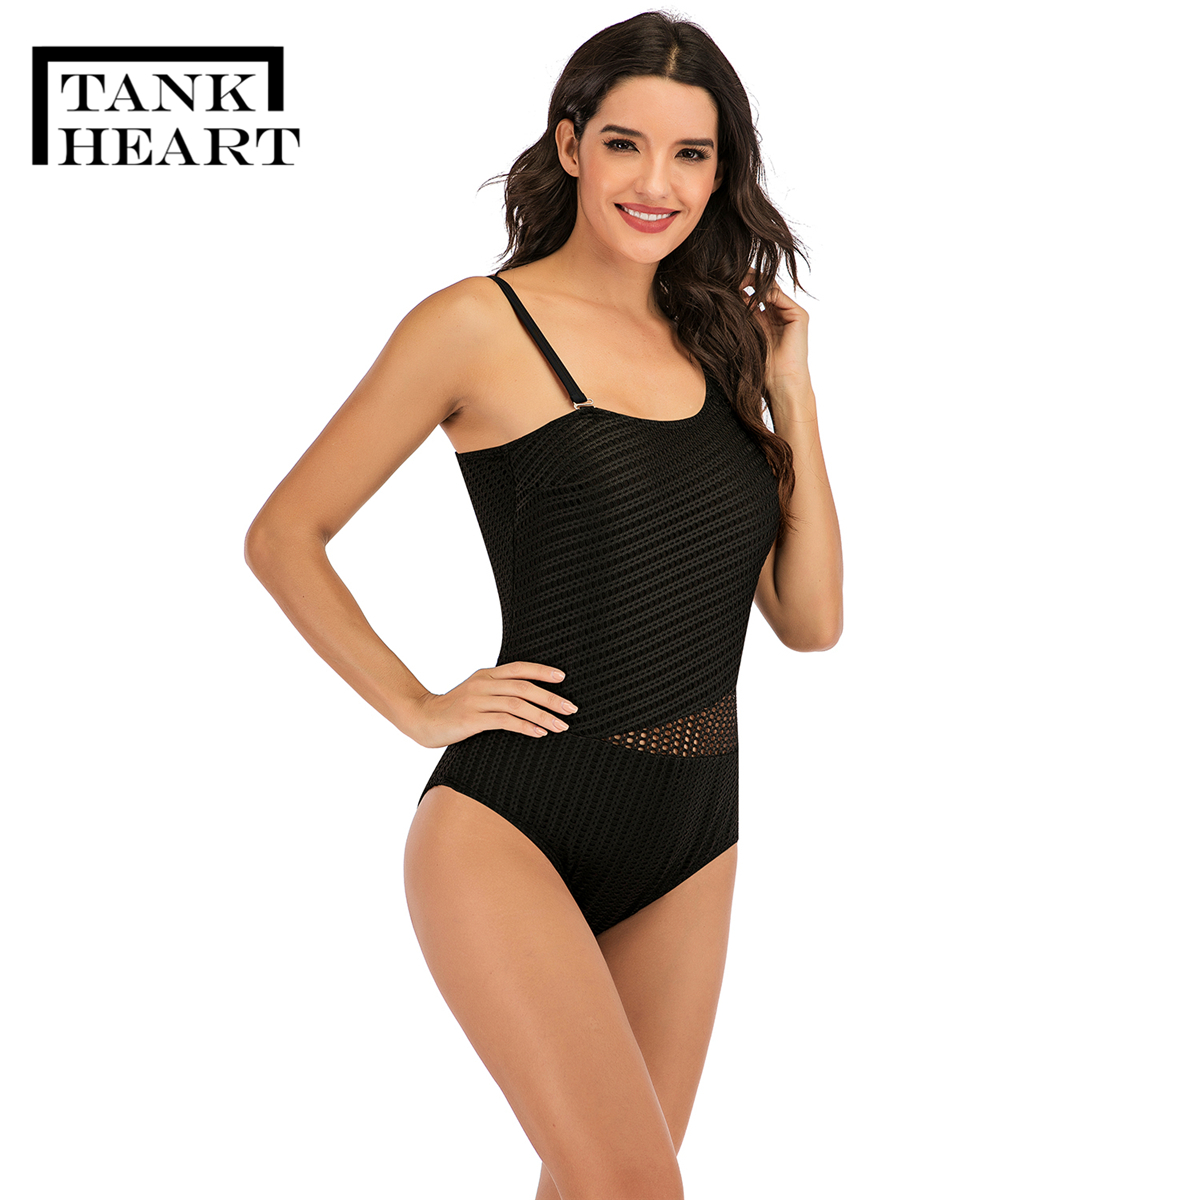 Image 5 - Tank Heart 2020 Black Mesh One Piece Swimsuit Plus Size Swimwear Women with Chest Pad One Shoulder Swimming Suit for WomenBody Suits   -